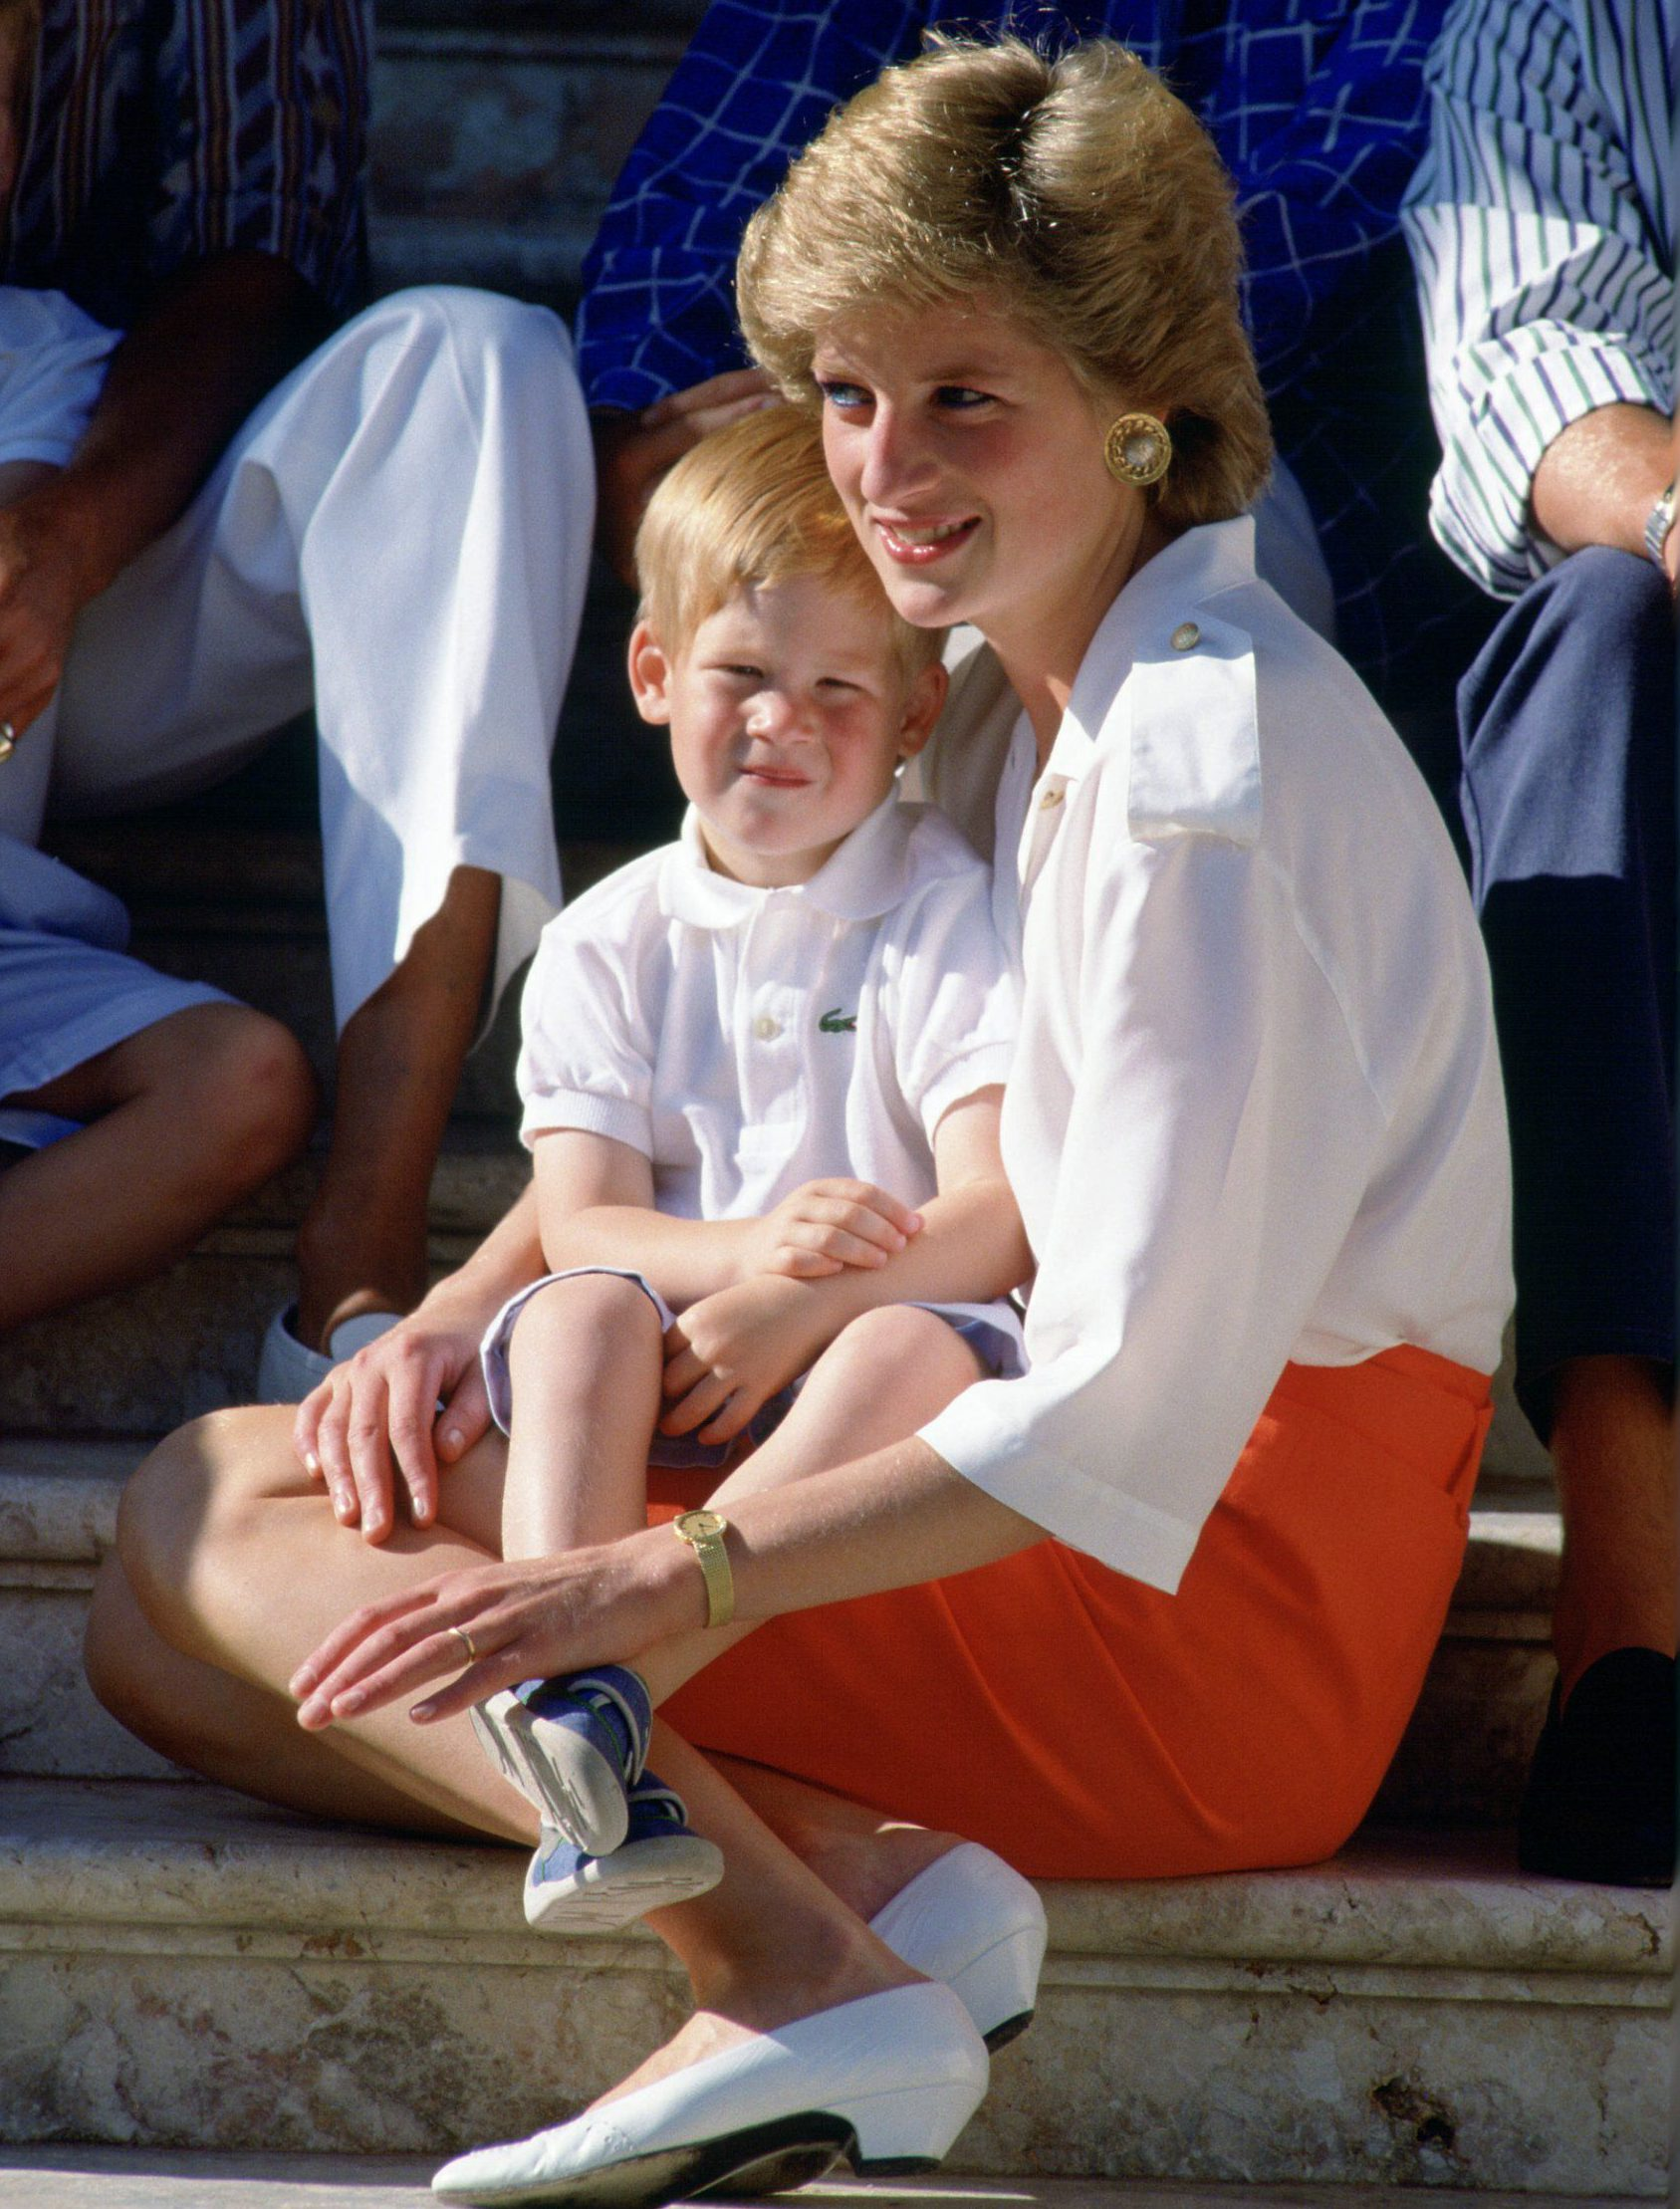 PALMA, SPAIN - AUGUST 13:  Diana, Princess Of Wales, Sitting On The Steps Of The Marivent Palace With Her Son, Prince Harry, Sitting On Her Lap At A Photocall During Their Summer Holiday. Prince Harry's T-shirt Is By Fashion Designer Lacoste.  (Photo by Tim Graham/Getty Images)